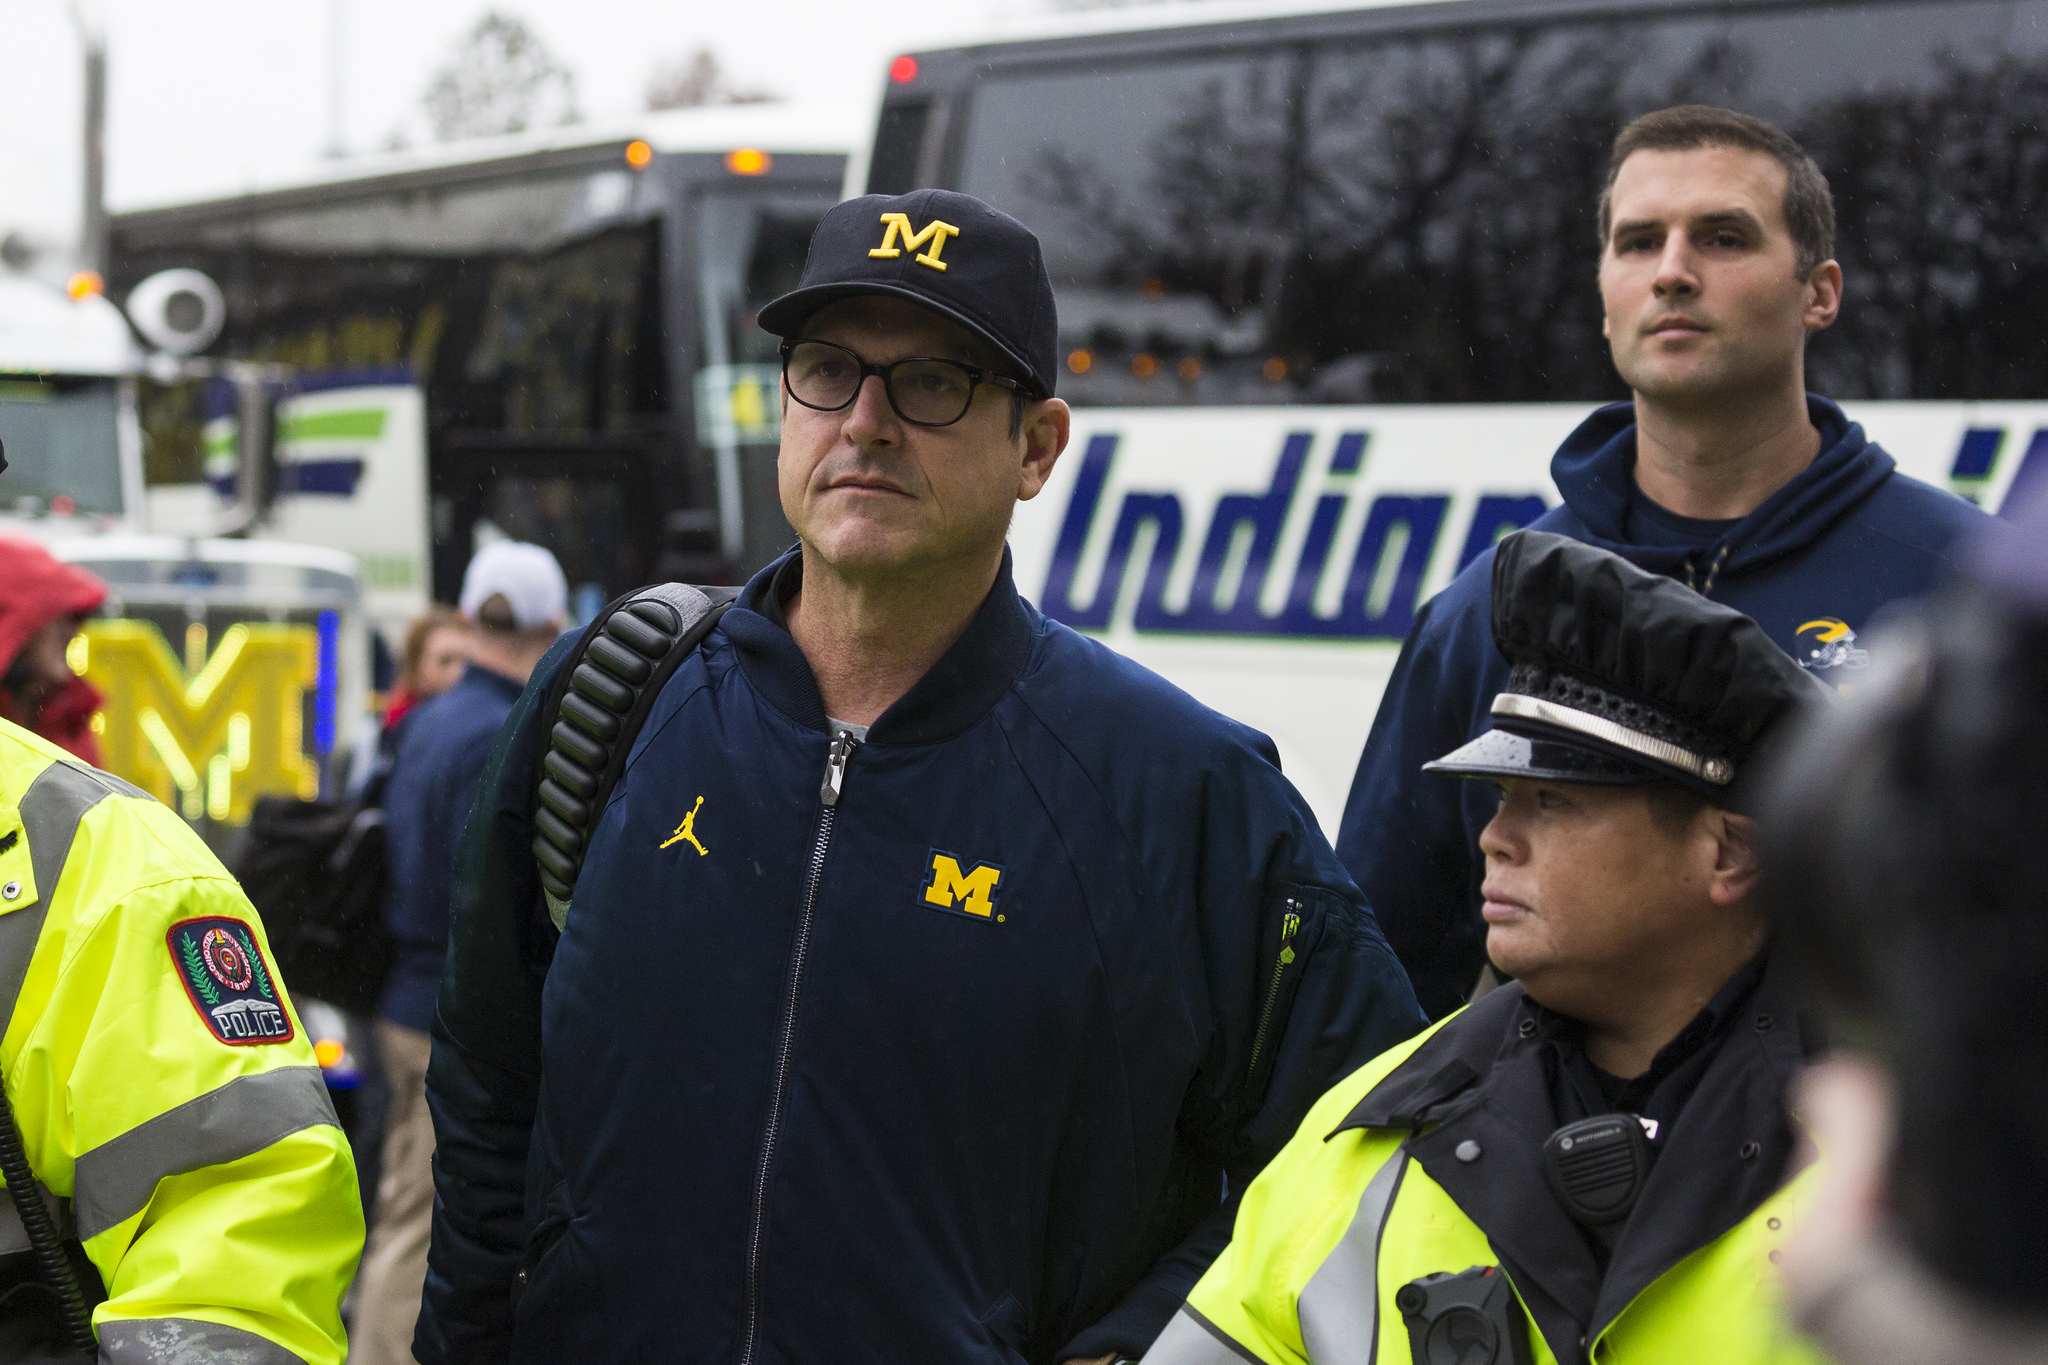 Jim Harbaugh lost his fourth straight edition of The Game on Saturday